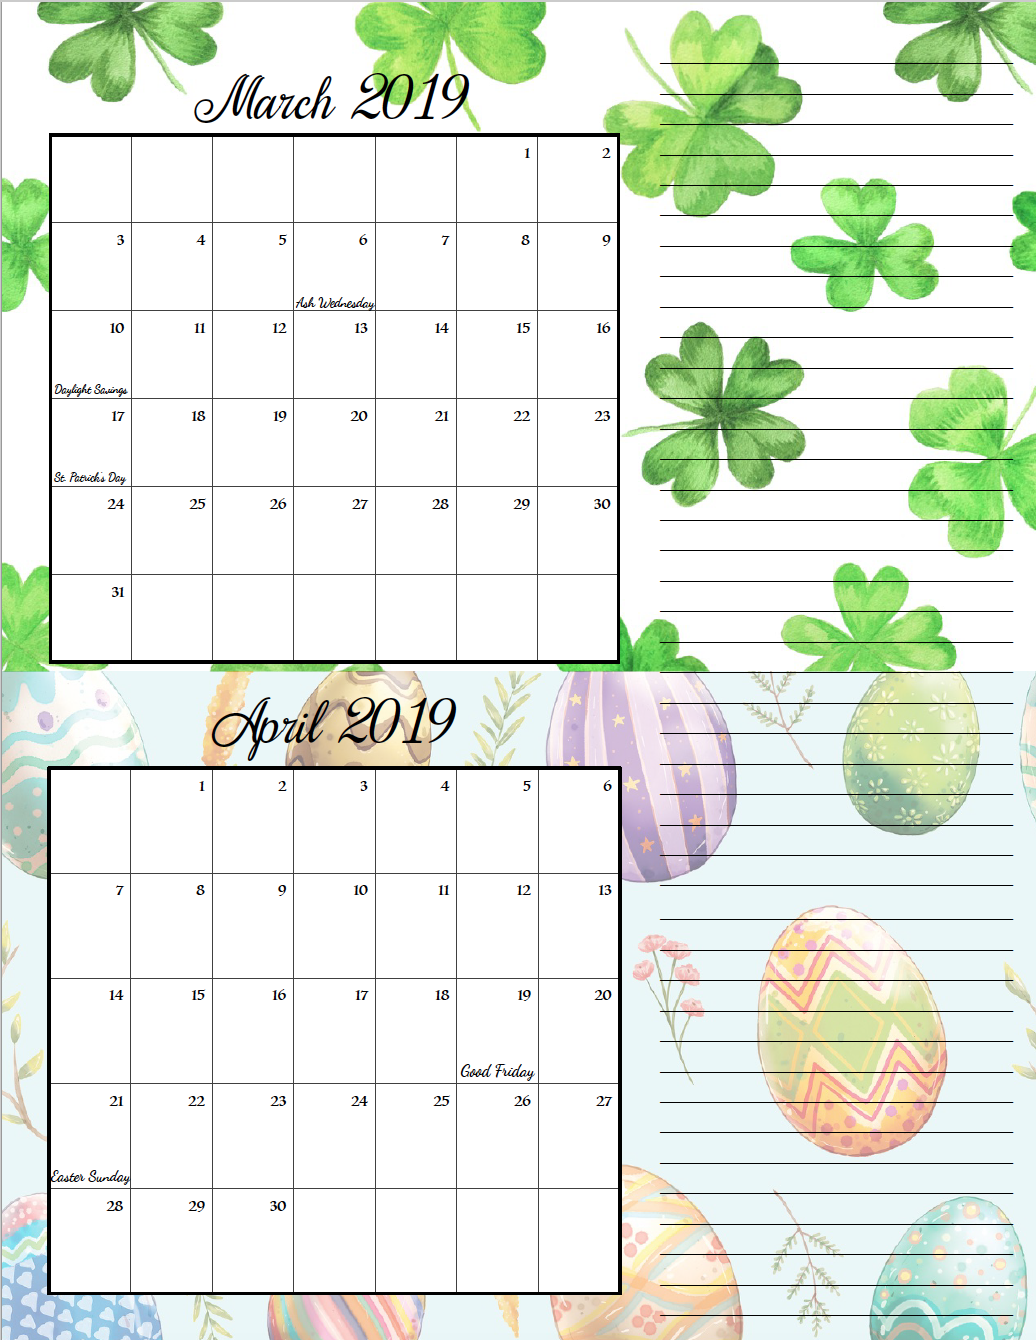 March/April. FREE Printable 2019 Bimonthly Calendars. Space for notes, holidays marked. 2 different designs! #free #freeprintable #printable #calendar #freecalendar #bimonthly #freeprintablecalendar